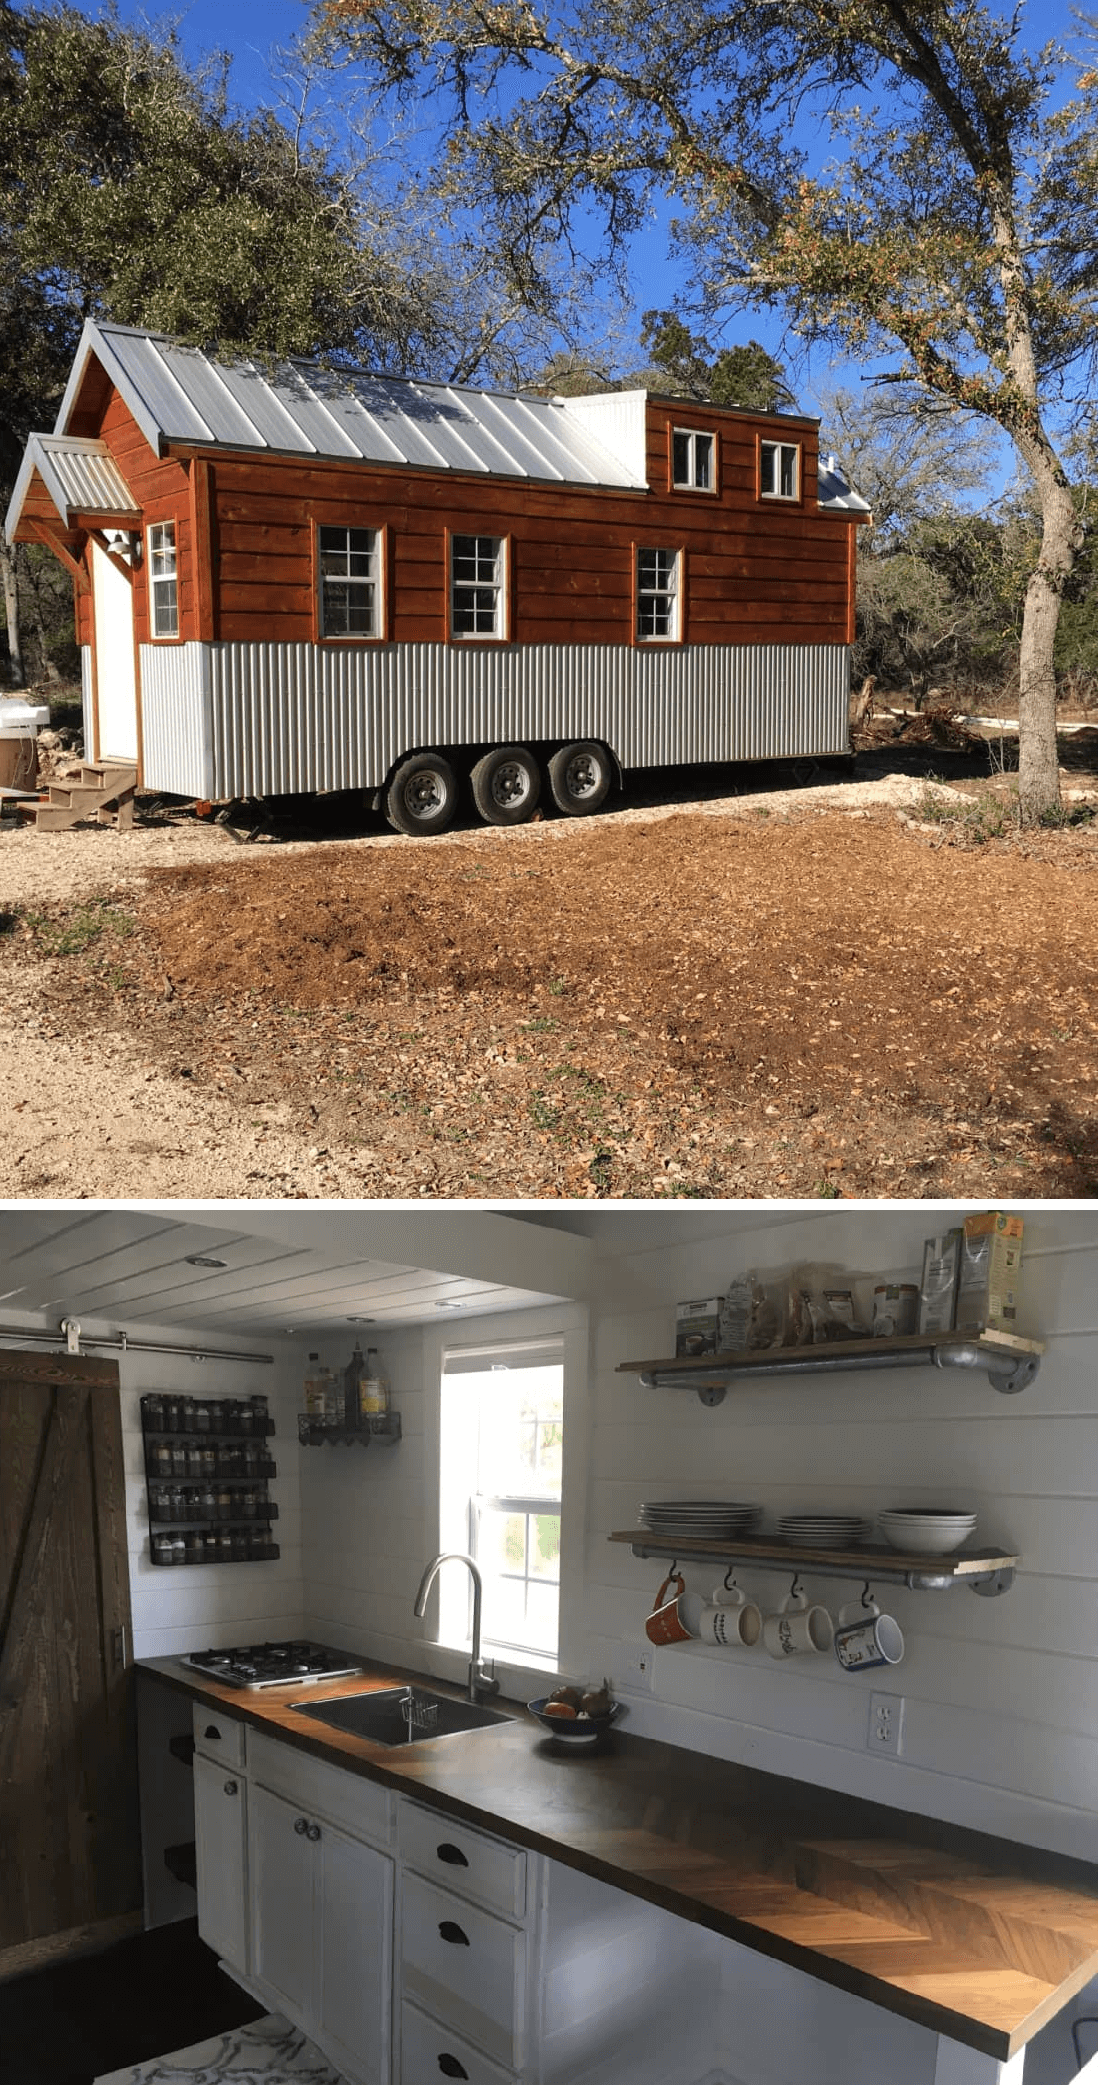 Remarkable Tiny Ranch Home In Austin Texas For Sale 60 000 Tiny Download Free Architecture Designs Rallybritishbridgeorg